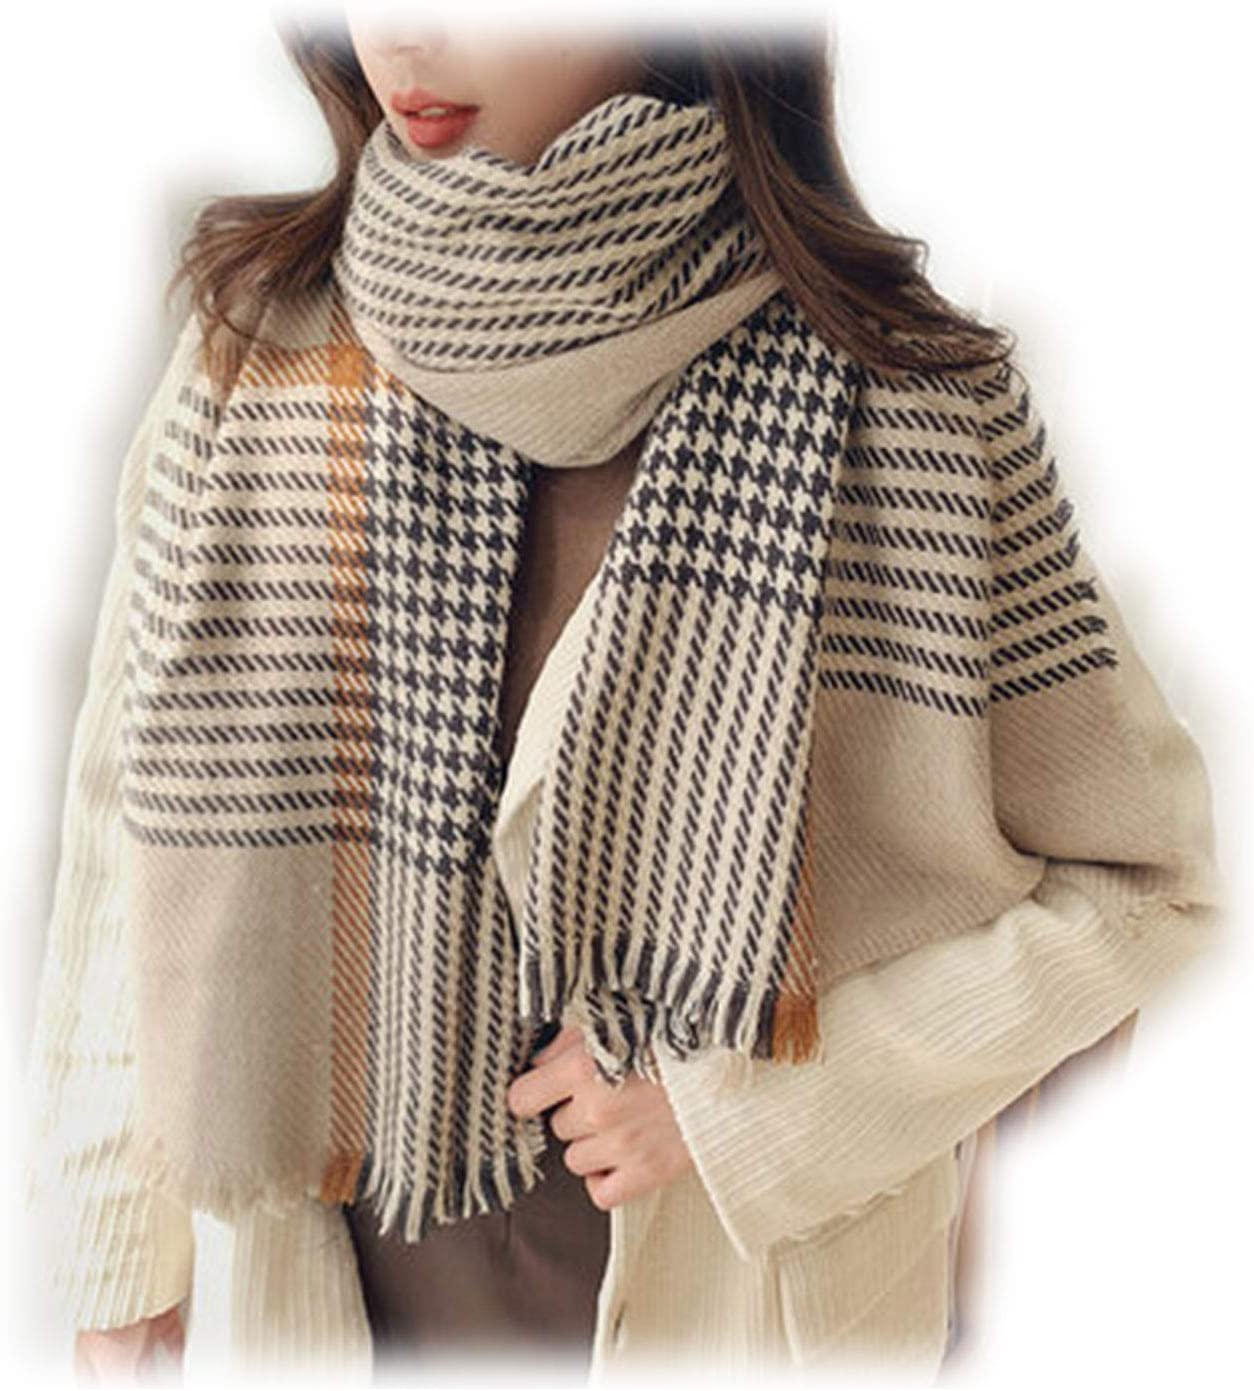 DUTUI Children's Winter Scarf, All-Match Classic Thick Warm Scarf for Men's Autumn and Winter, for Lovers